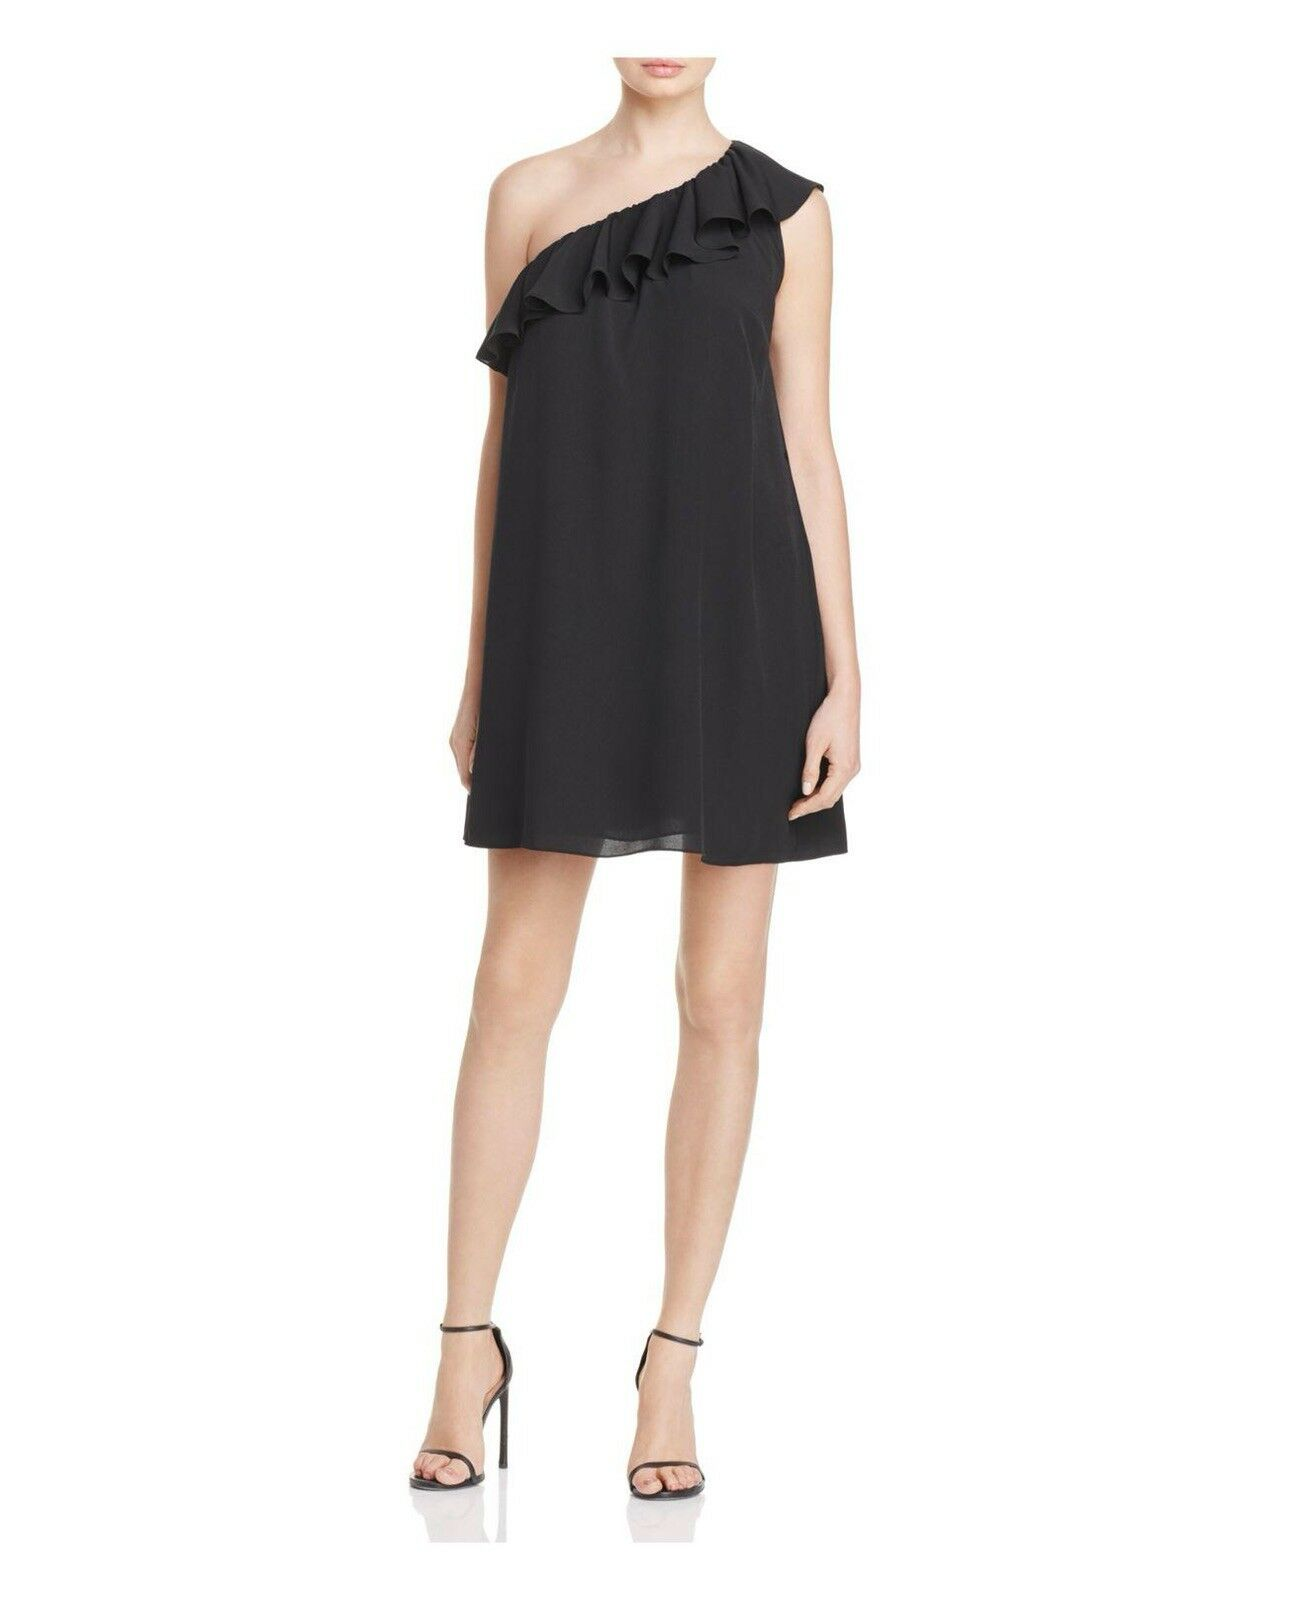 NWT French Connection One Shoulder Polly Plains Shift schwarz Dress Small Ruffle